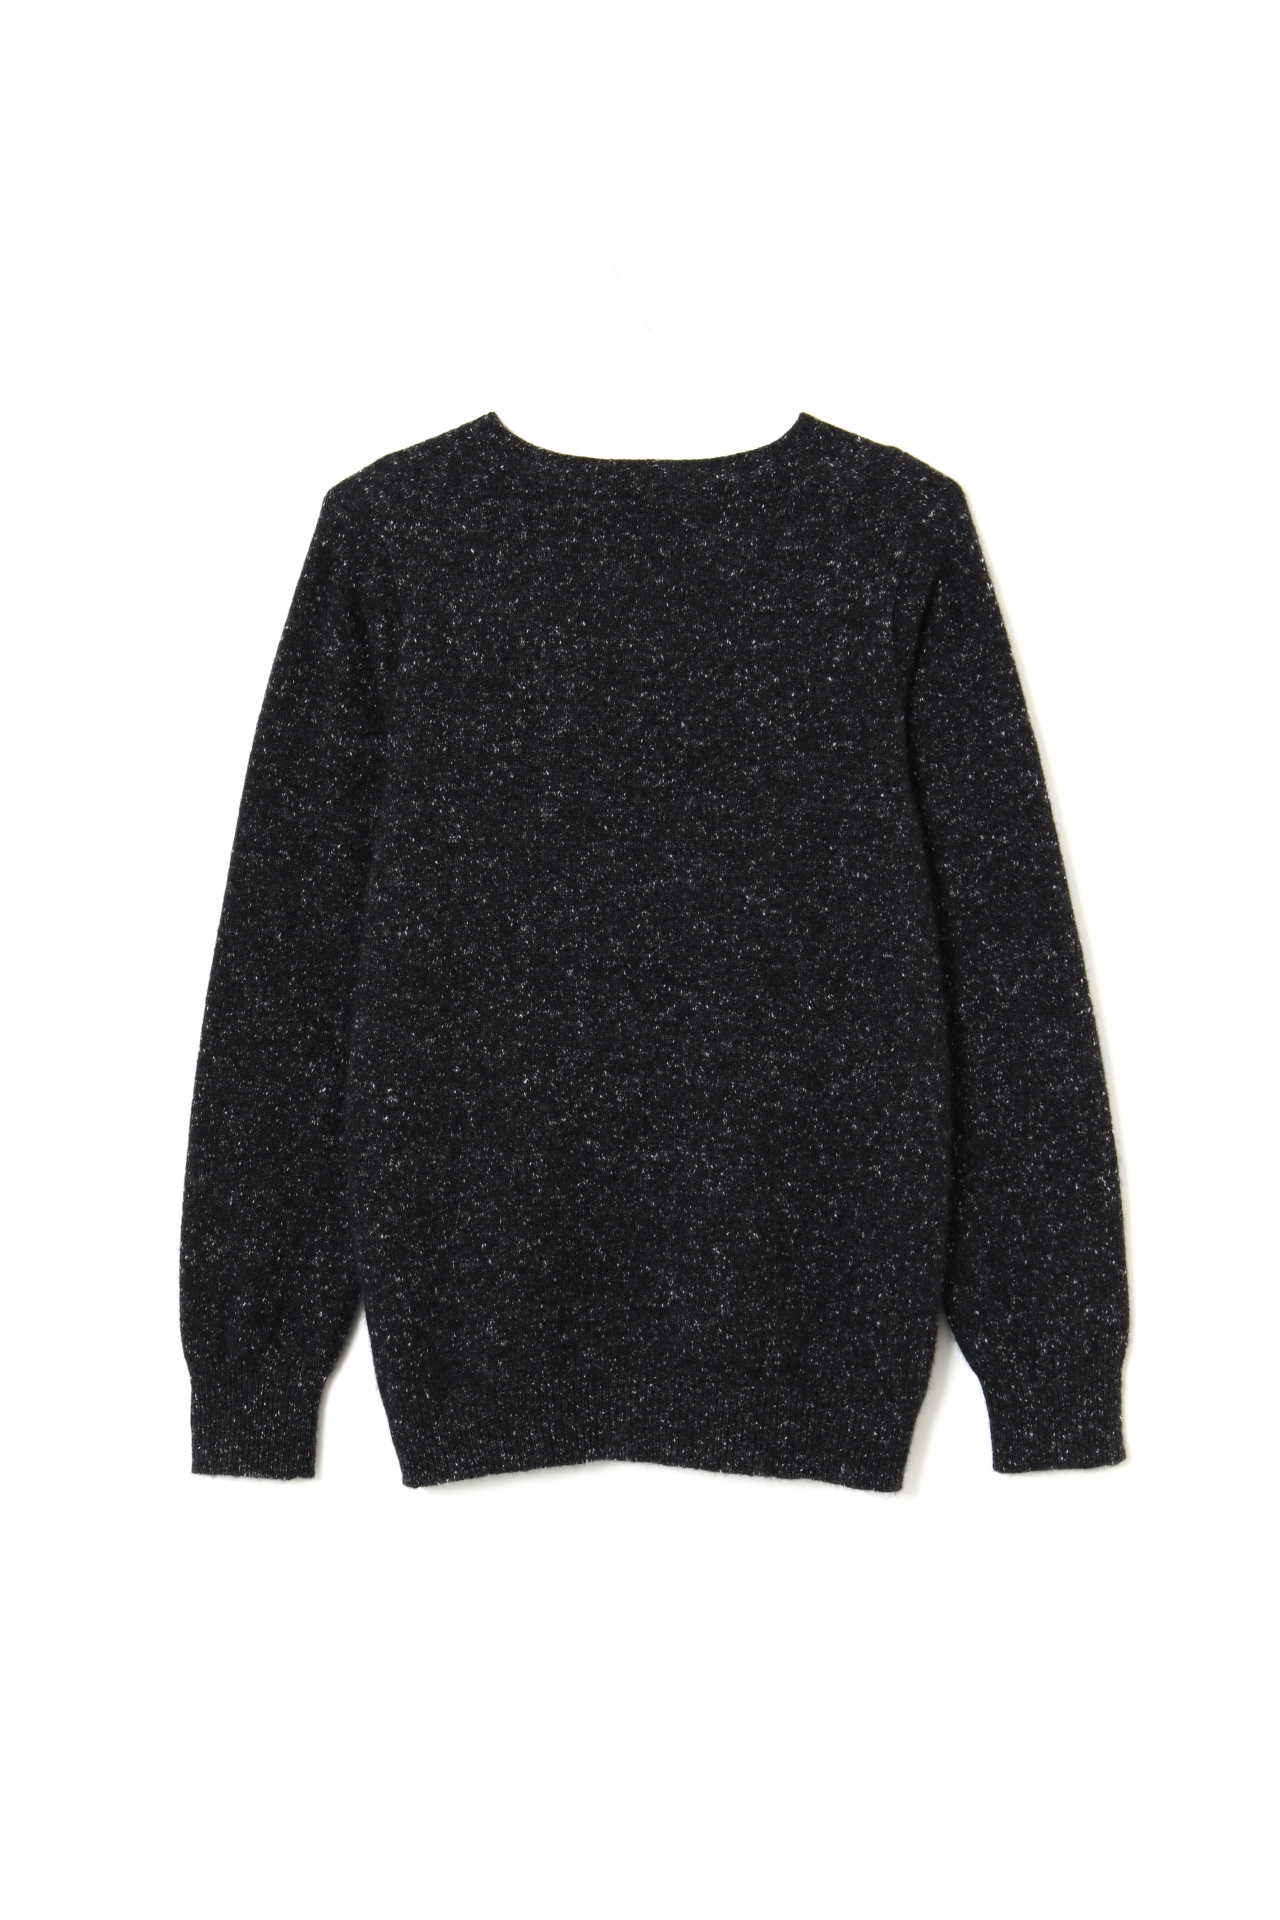 DONEGAL CASHMERE7